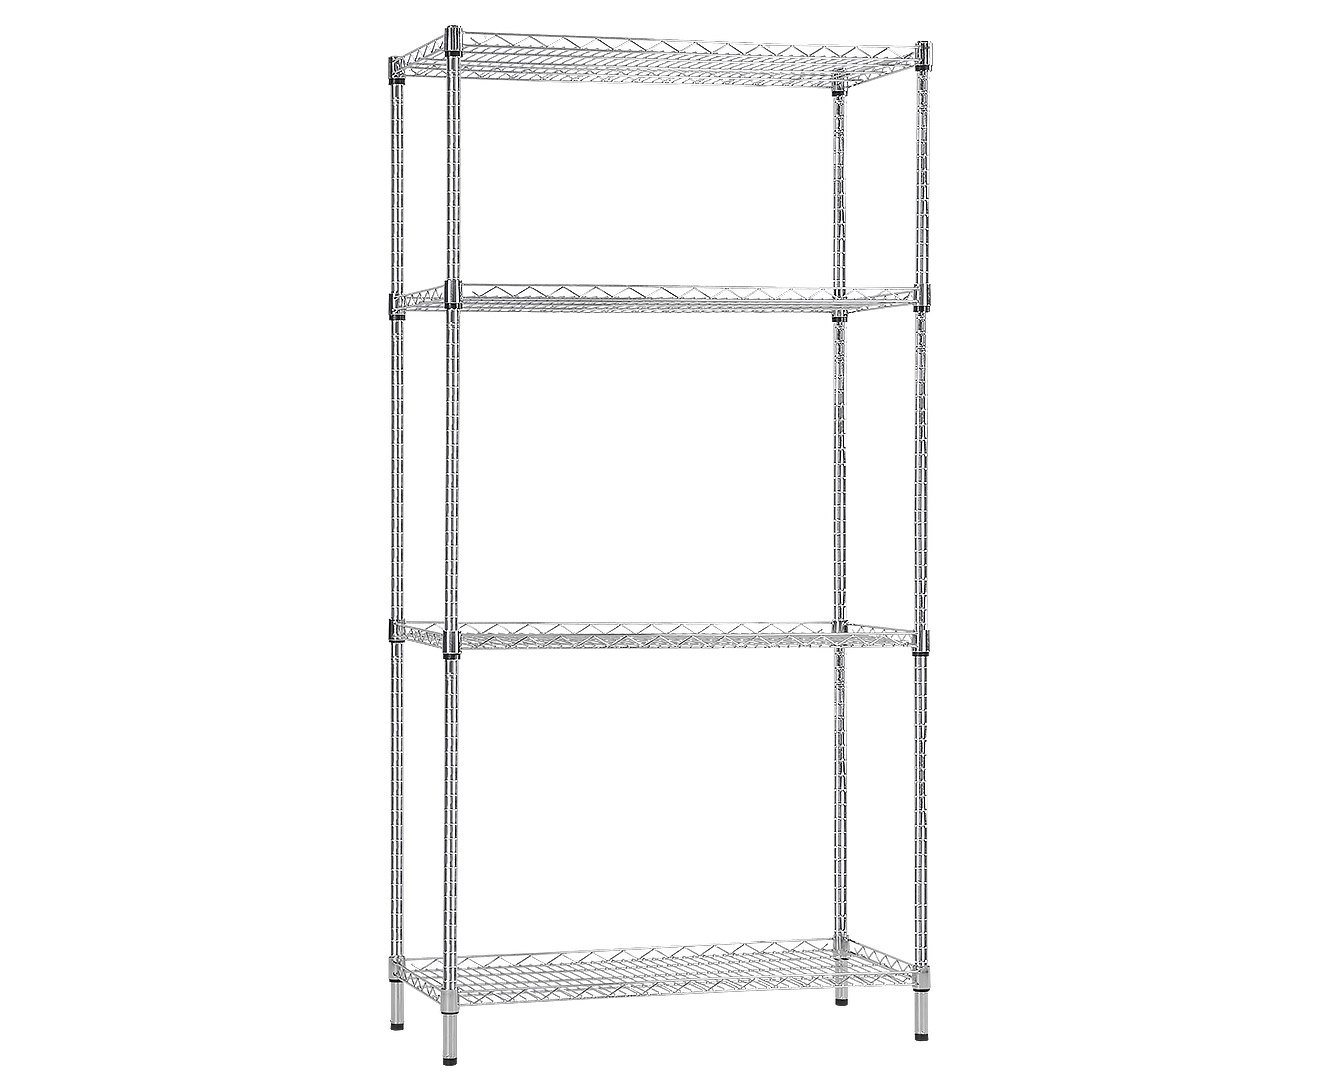 Syncrosteel Chrome Wire Shelving Storage Unit 1200x350mm - 1.80 m high